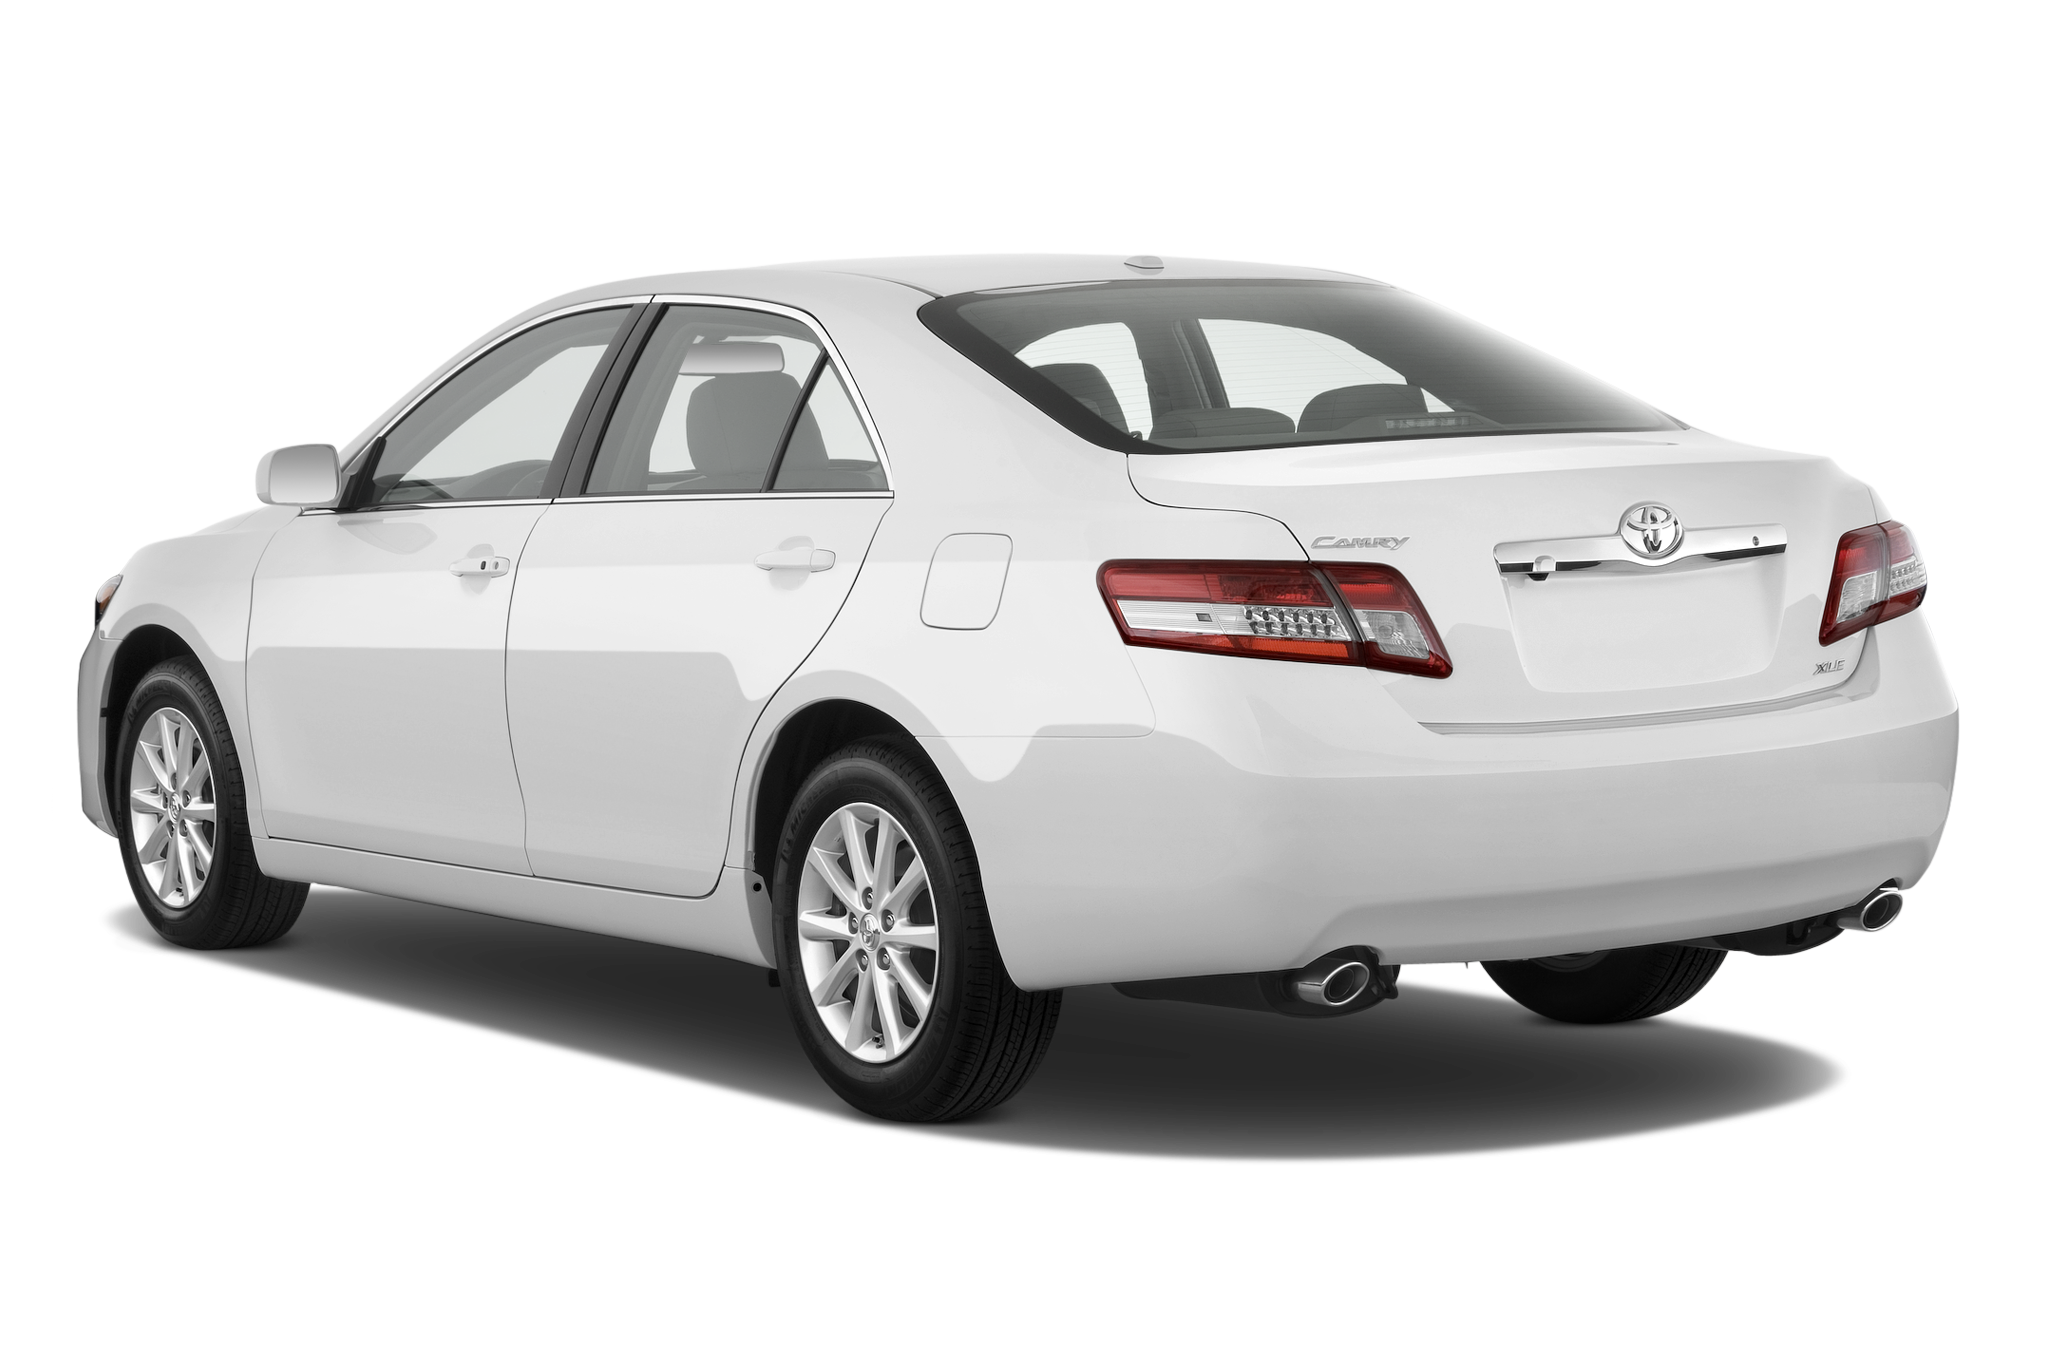 2011-toyota-camry-xle-v6-6-speed-at-sedan-angular-rear Breathtaking toyota Camry 2006 Price In Ksa Cars Trend